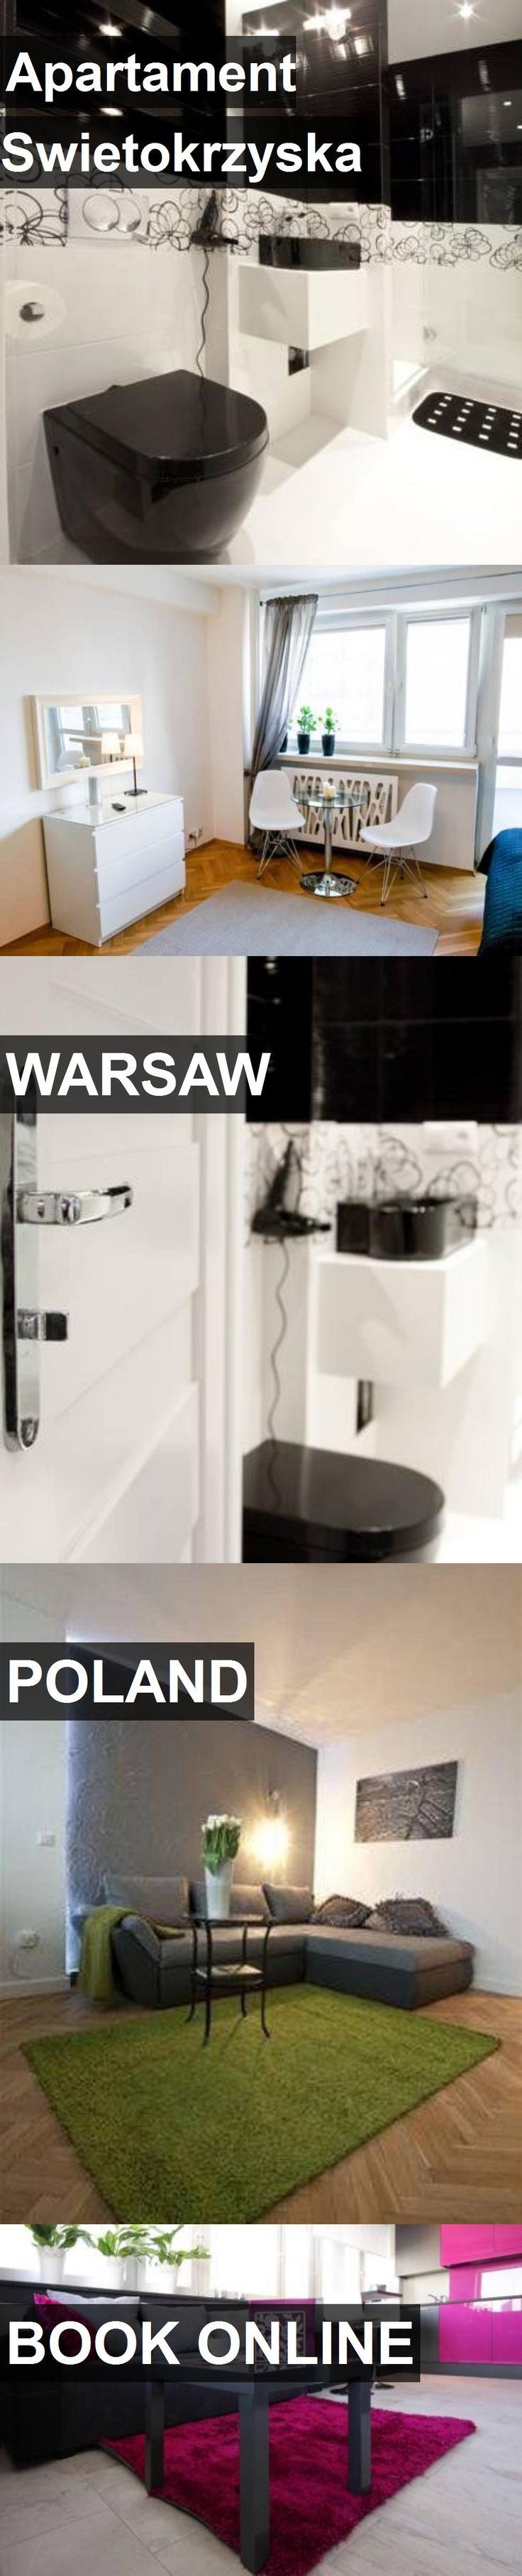 Hotel Apartament Swietokrzyska in Warsaw, Poland. For more information, photos, reviews and best prices please follow the link. #Poland #Warsaw #travel #vacation #hotel